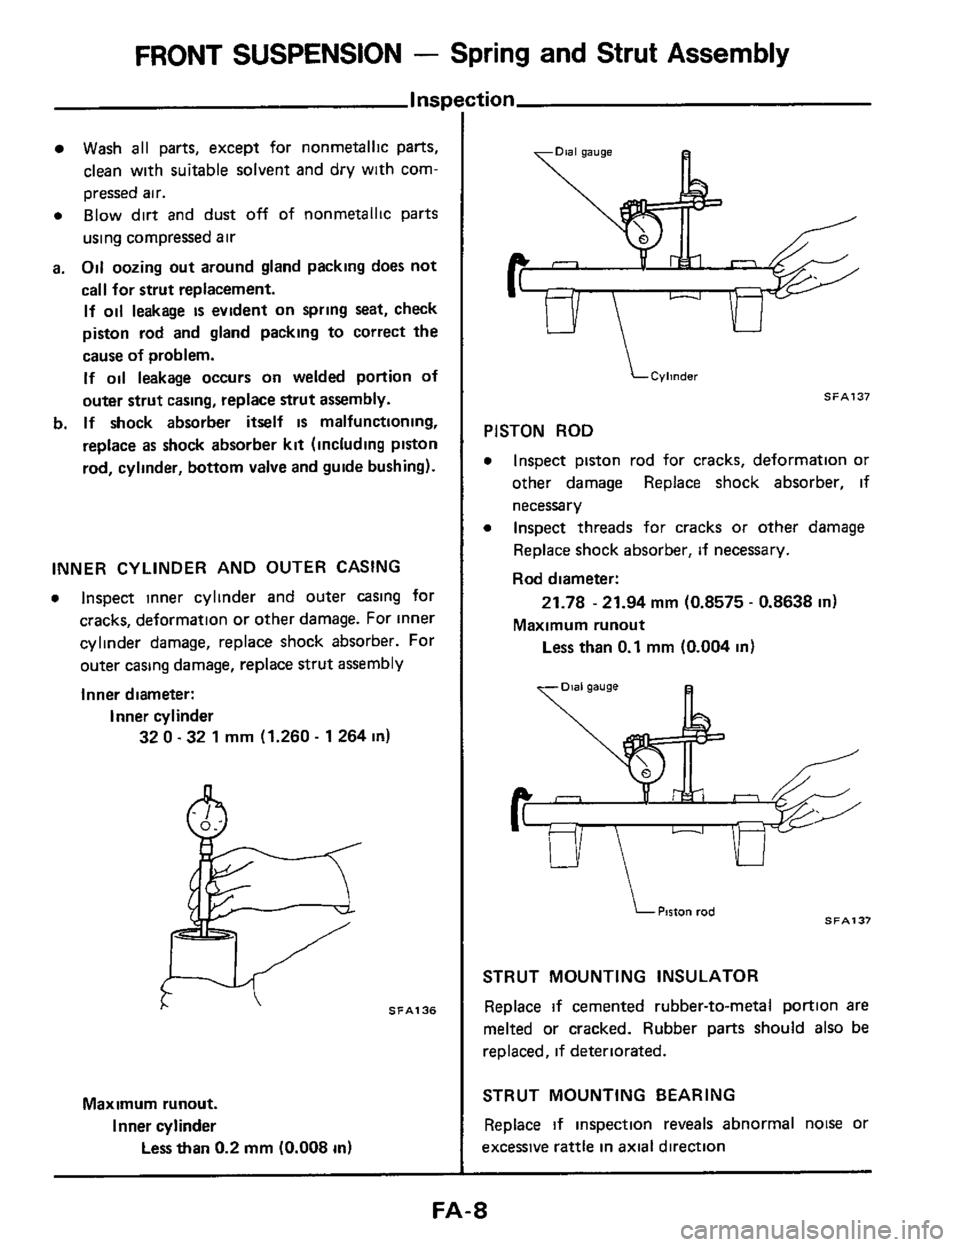 NISSAN 300ZX 1984 Z31 Front Suspension Workshop Manual, Page 8